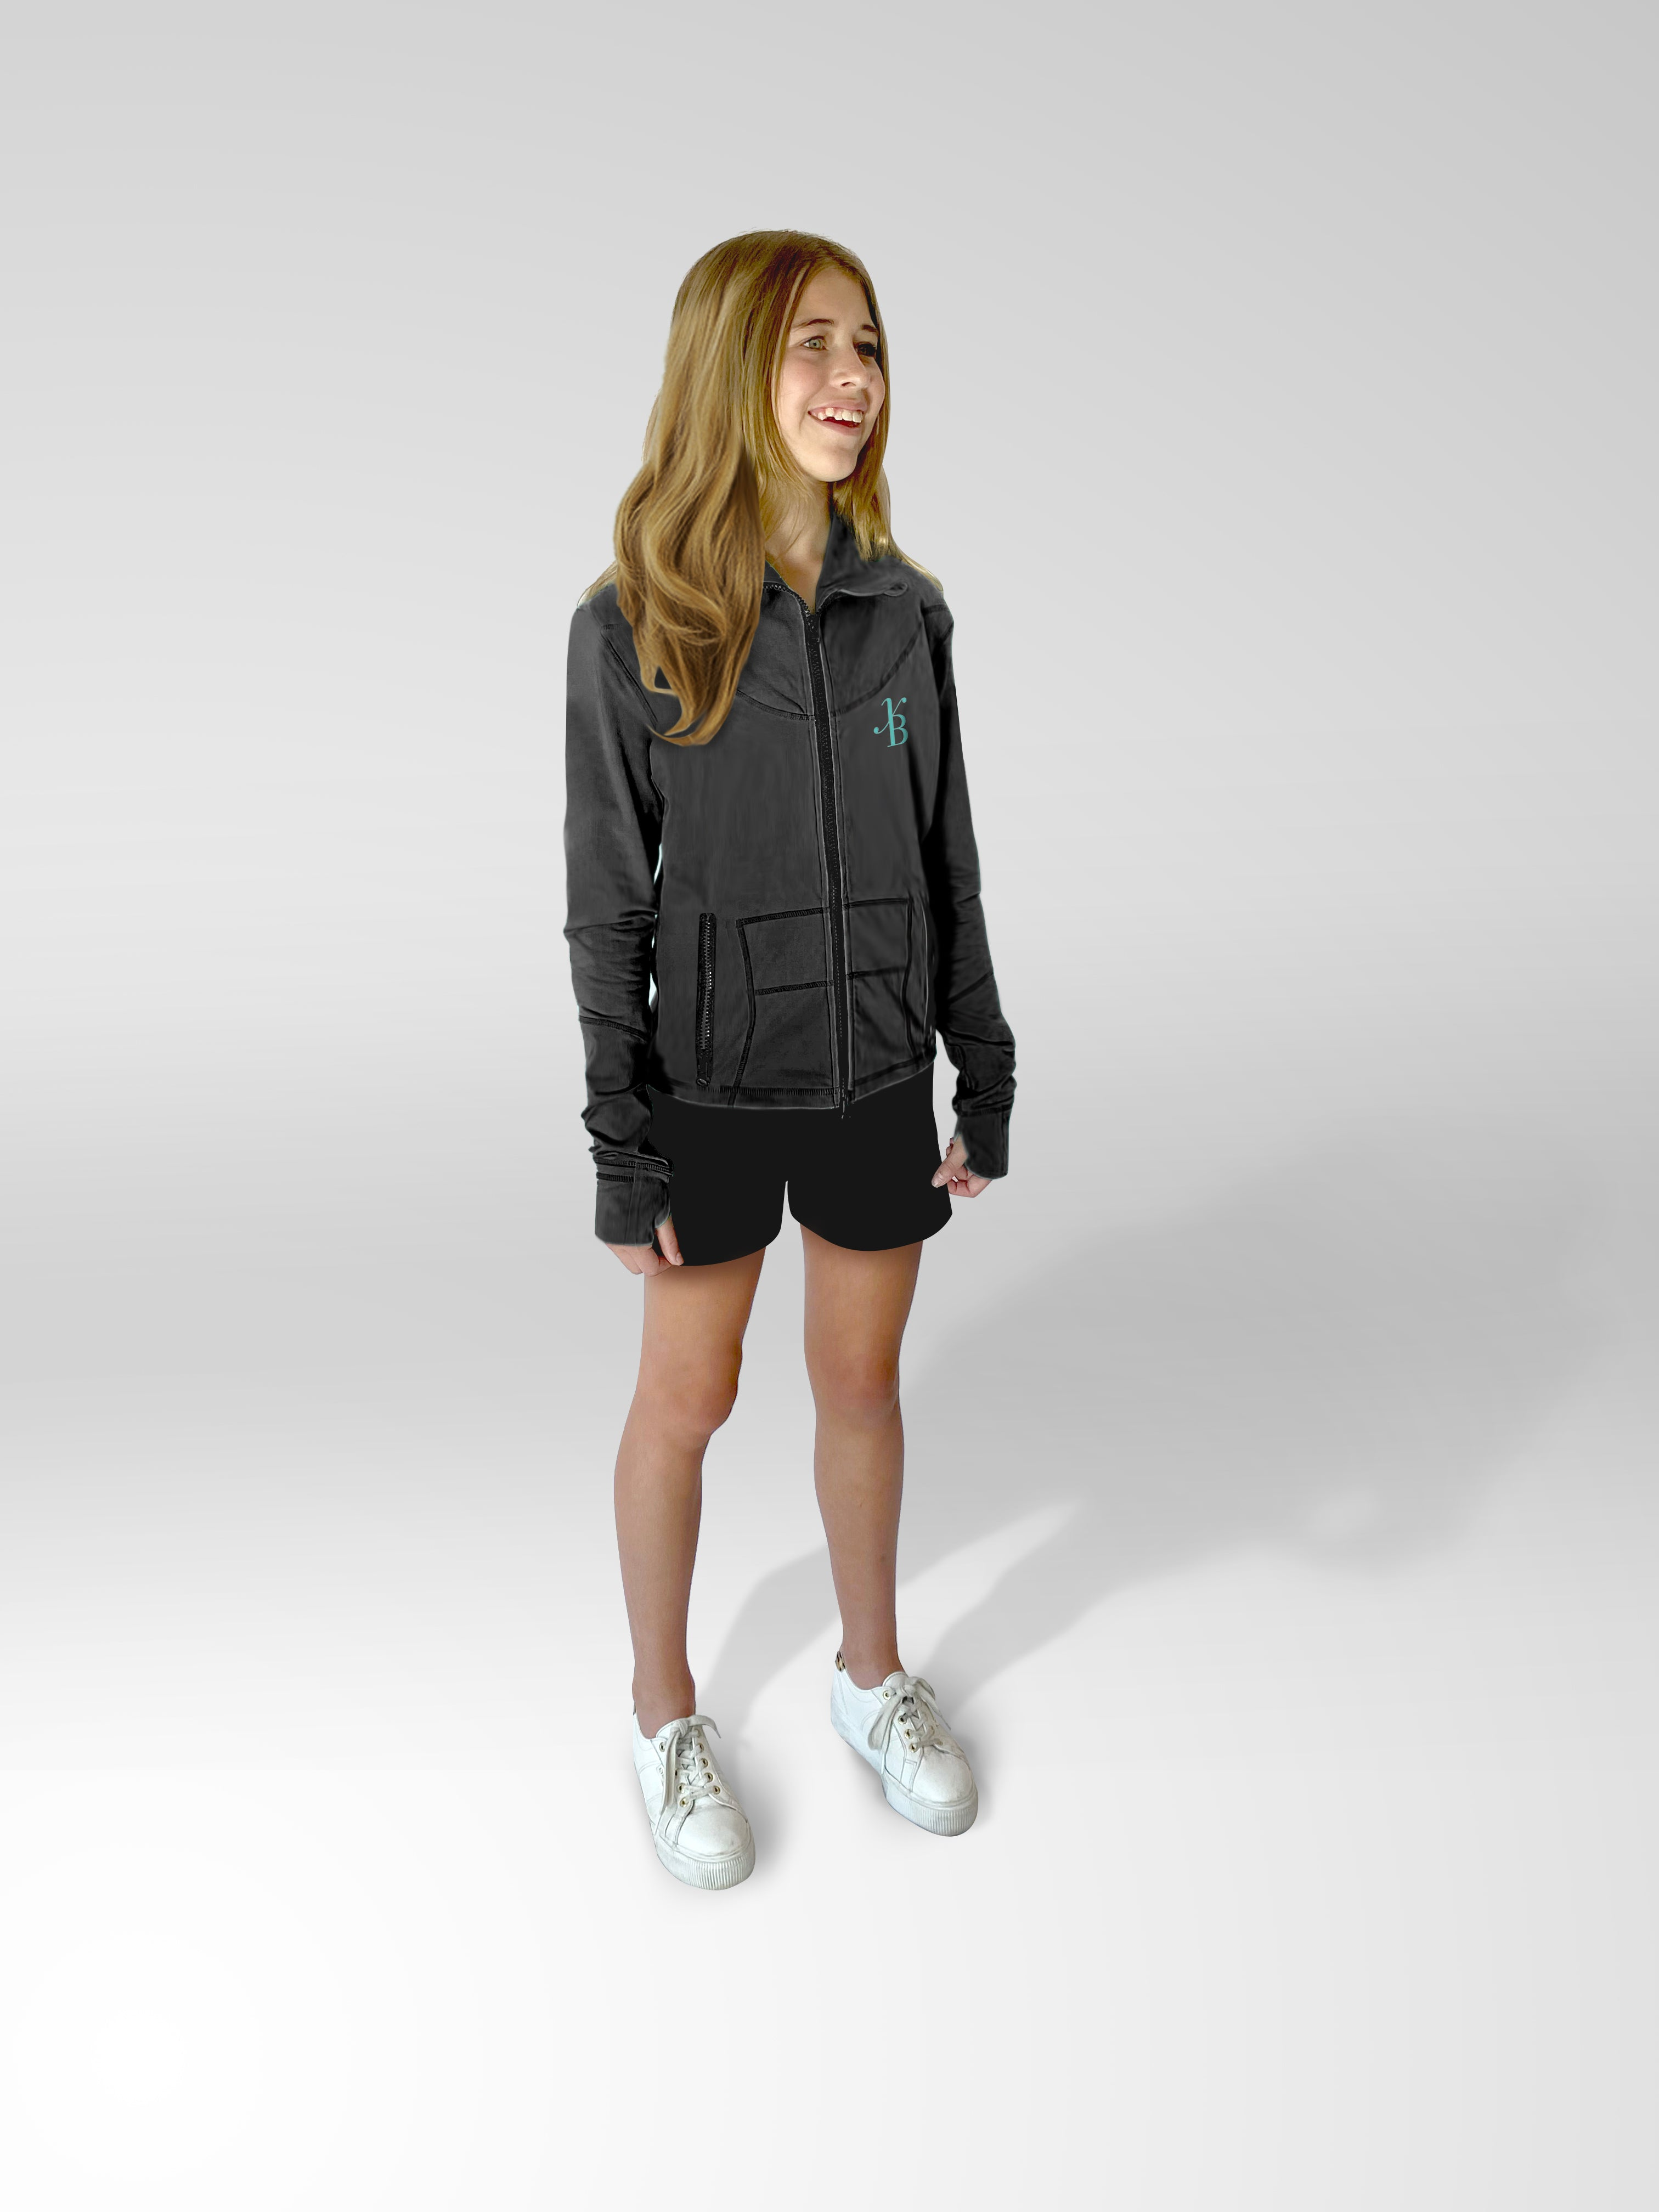 Youth Ballet Dance Jacket